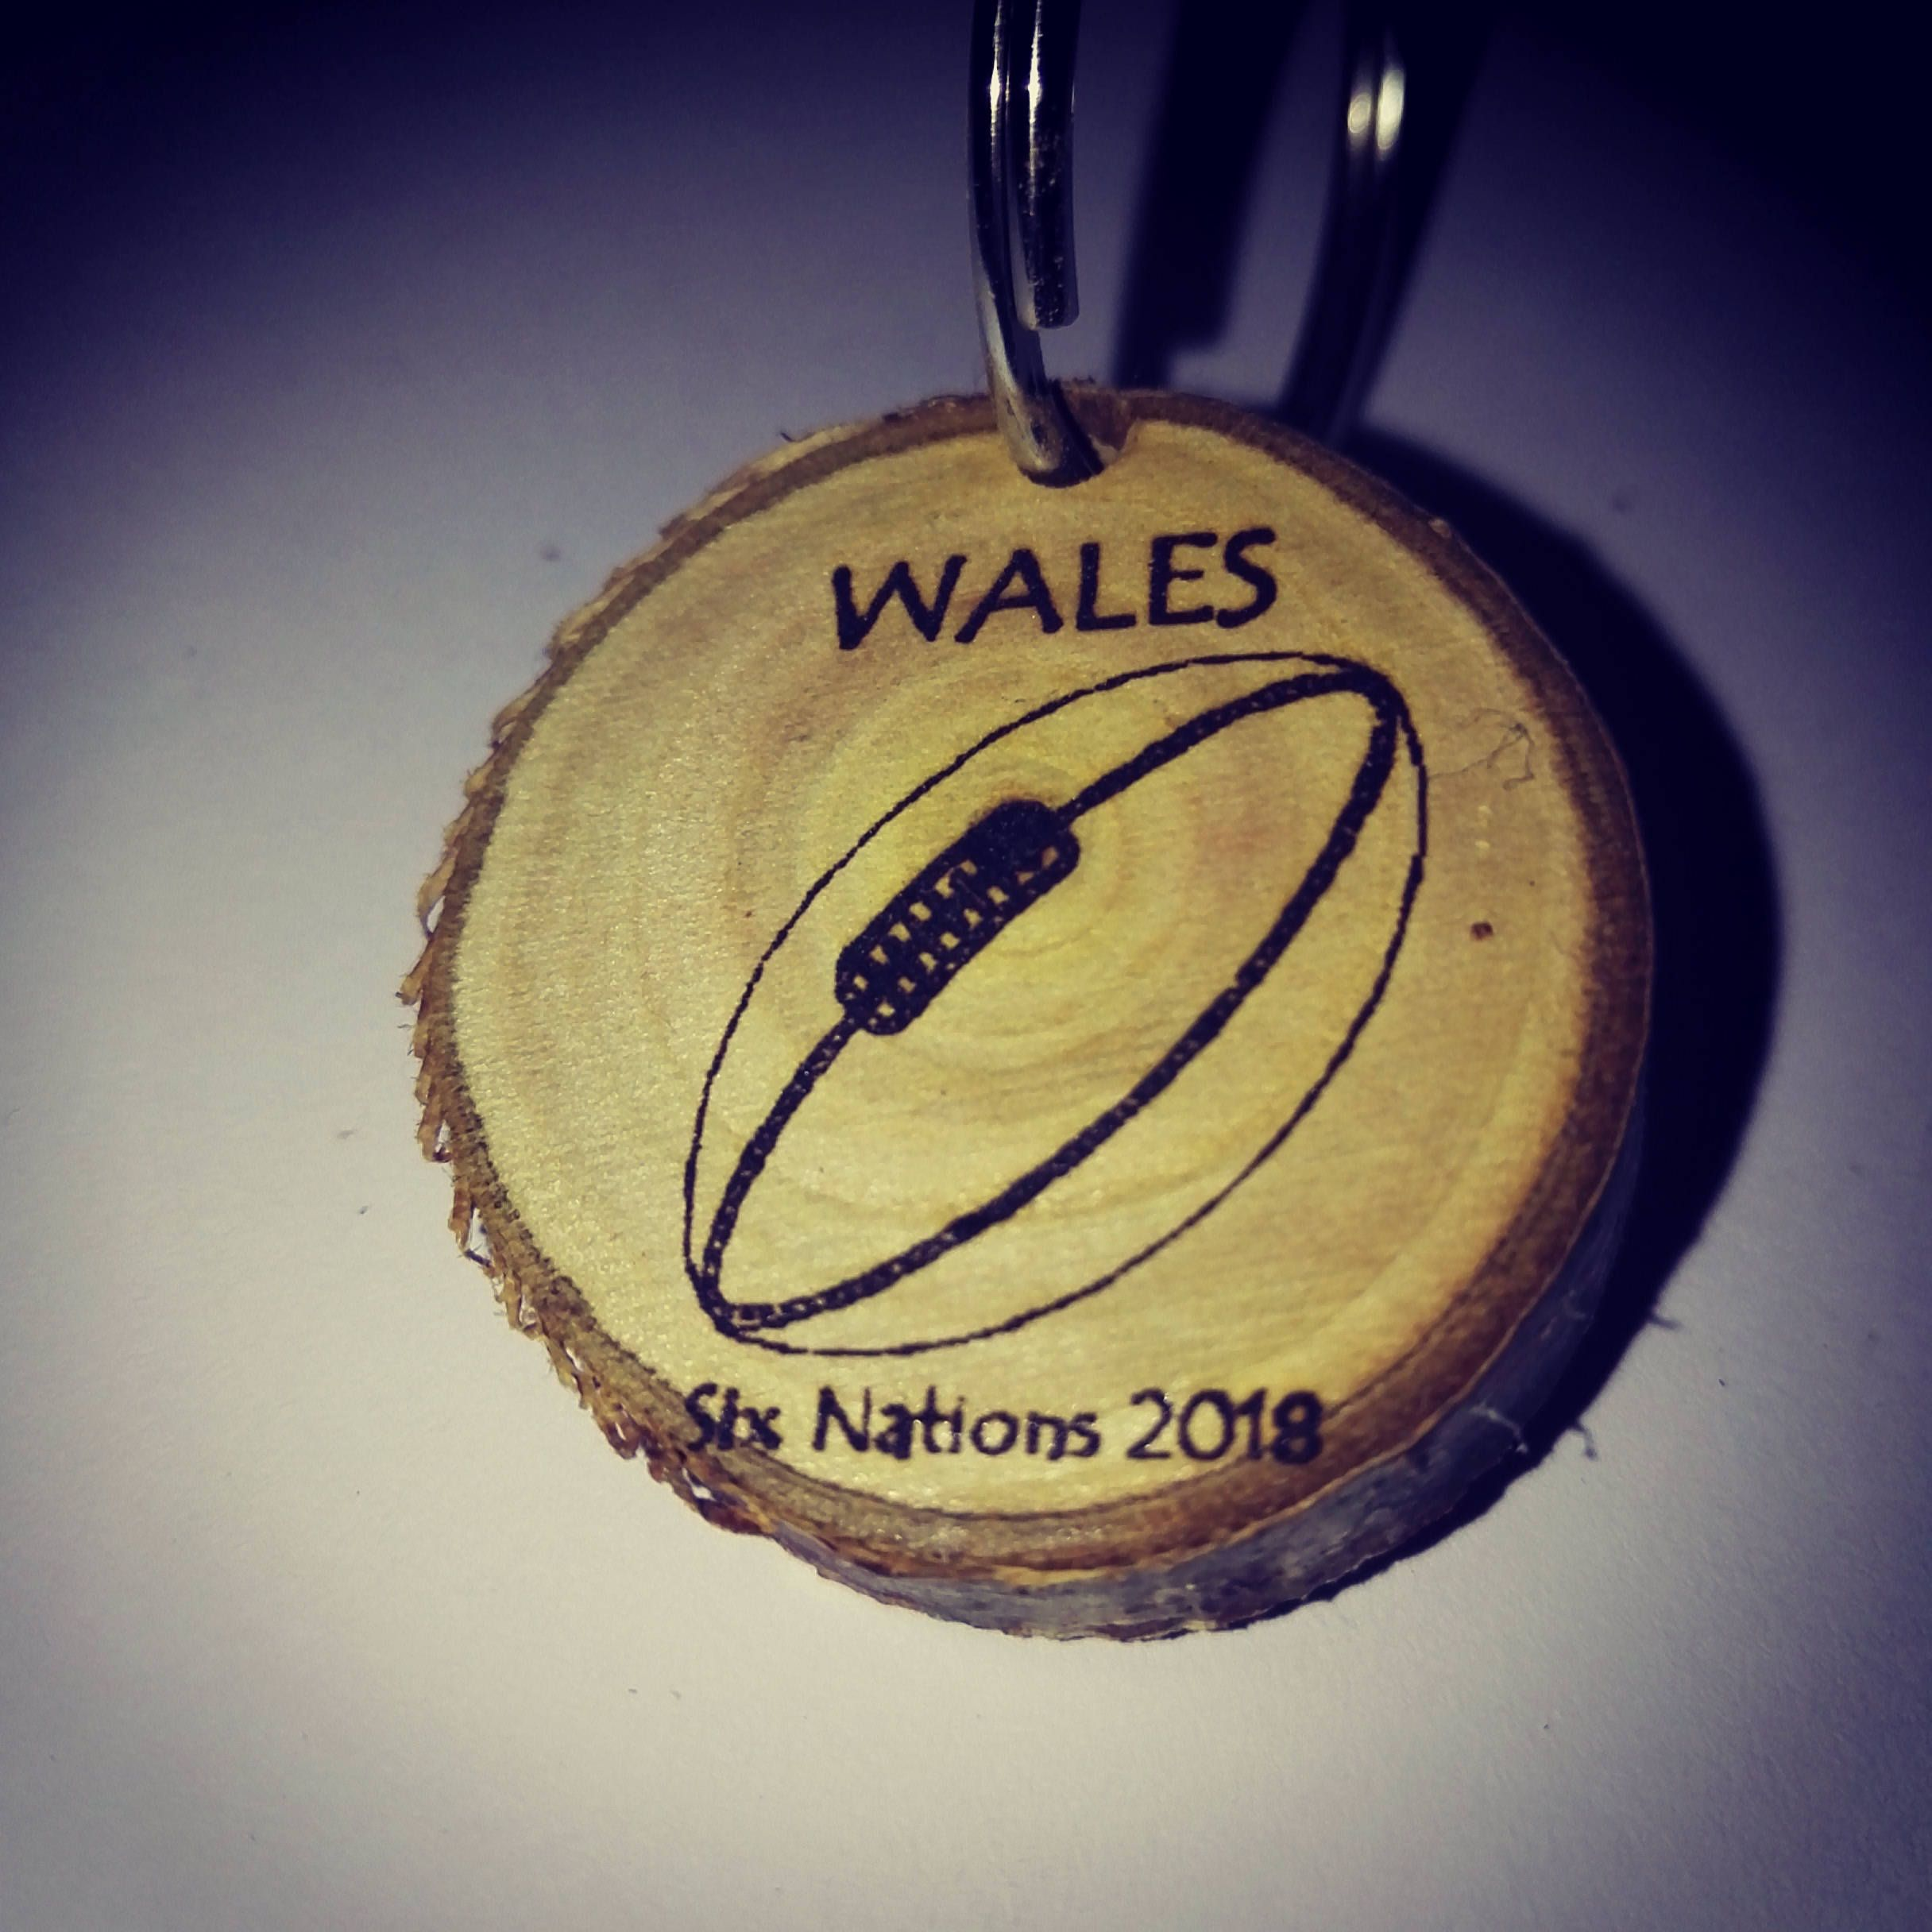 Ruby Six Nations Personalized Engraved Wales England Key Fob Key Ring Air Freshener Gift For Her Gift For Him Free E Gifts For Him Gifts For Her Six Nations